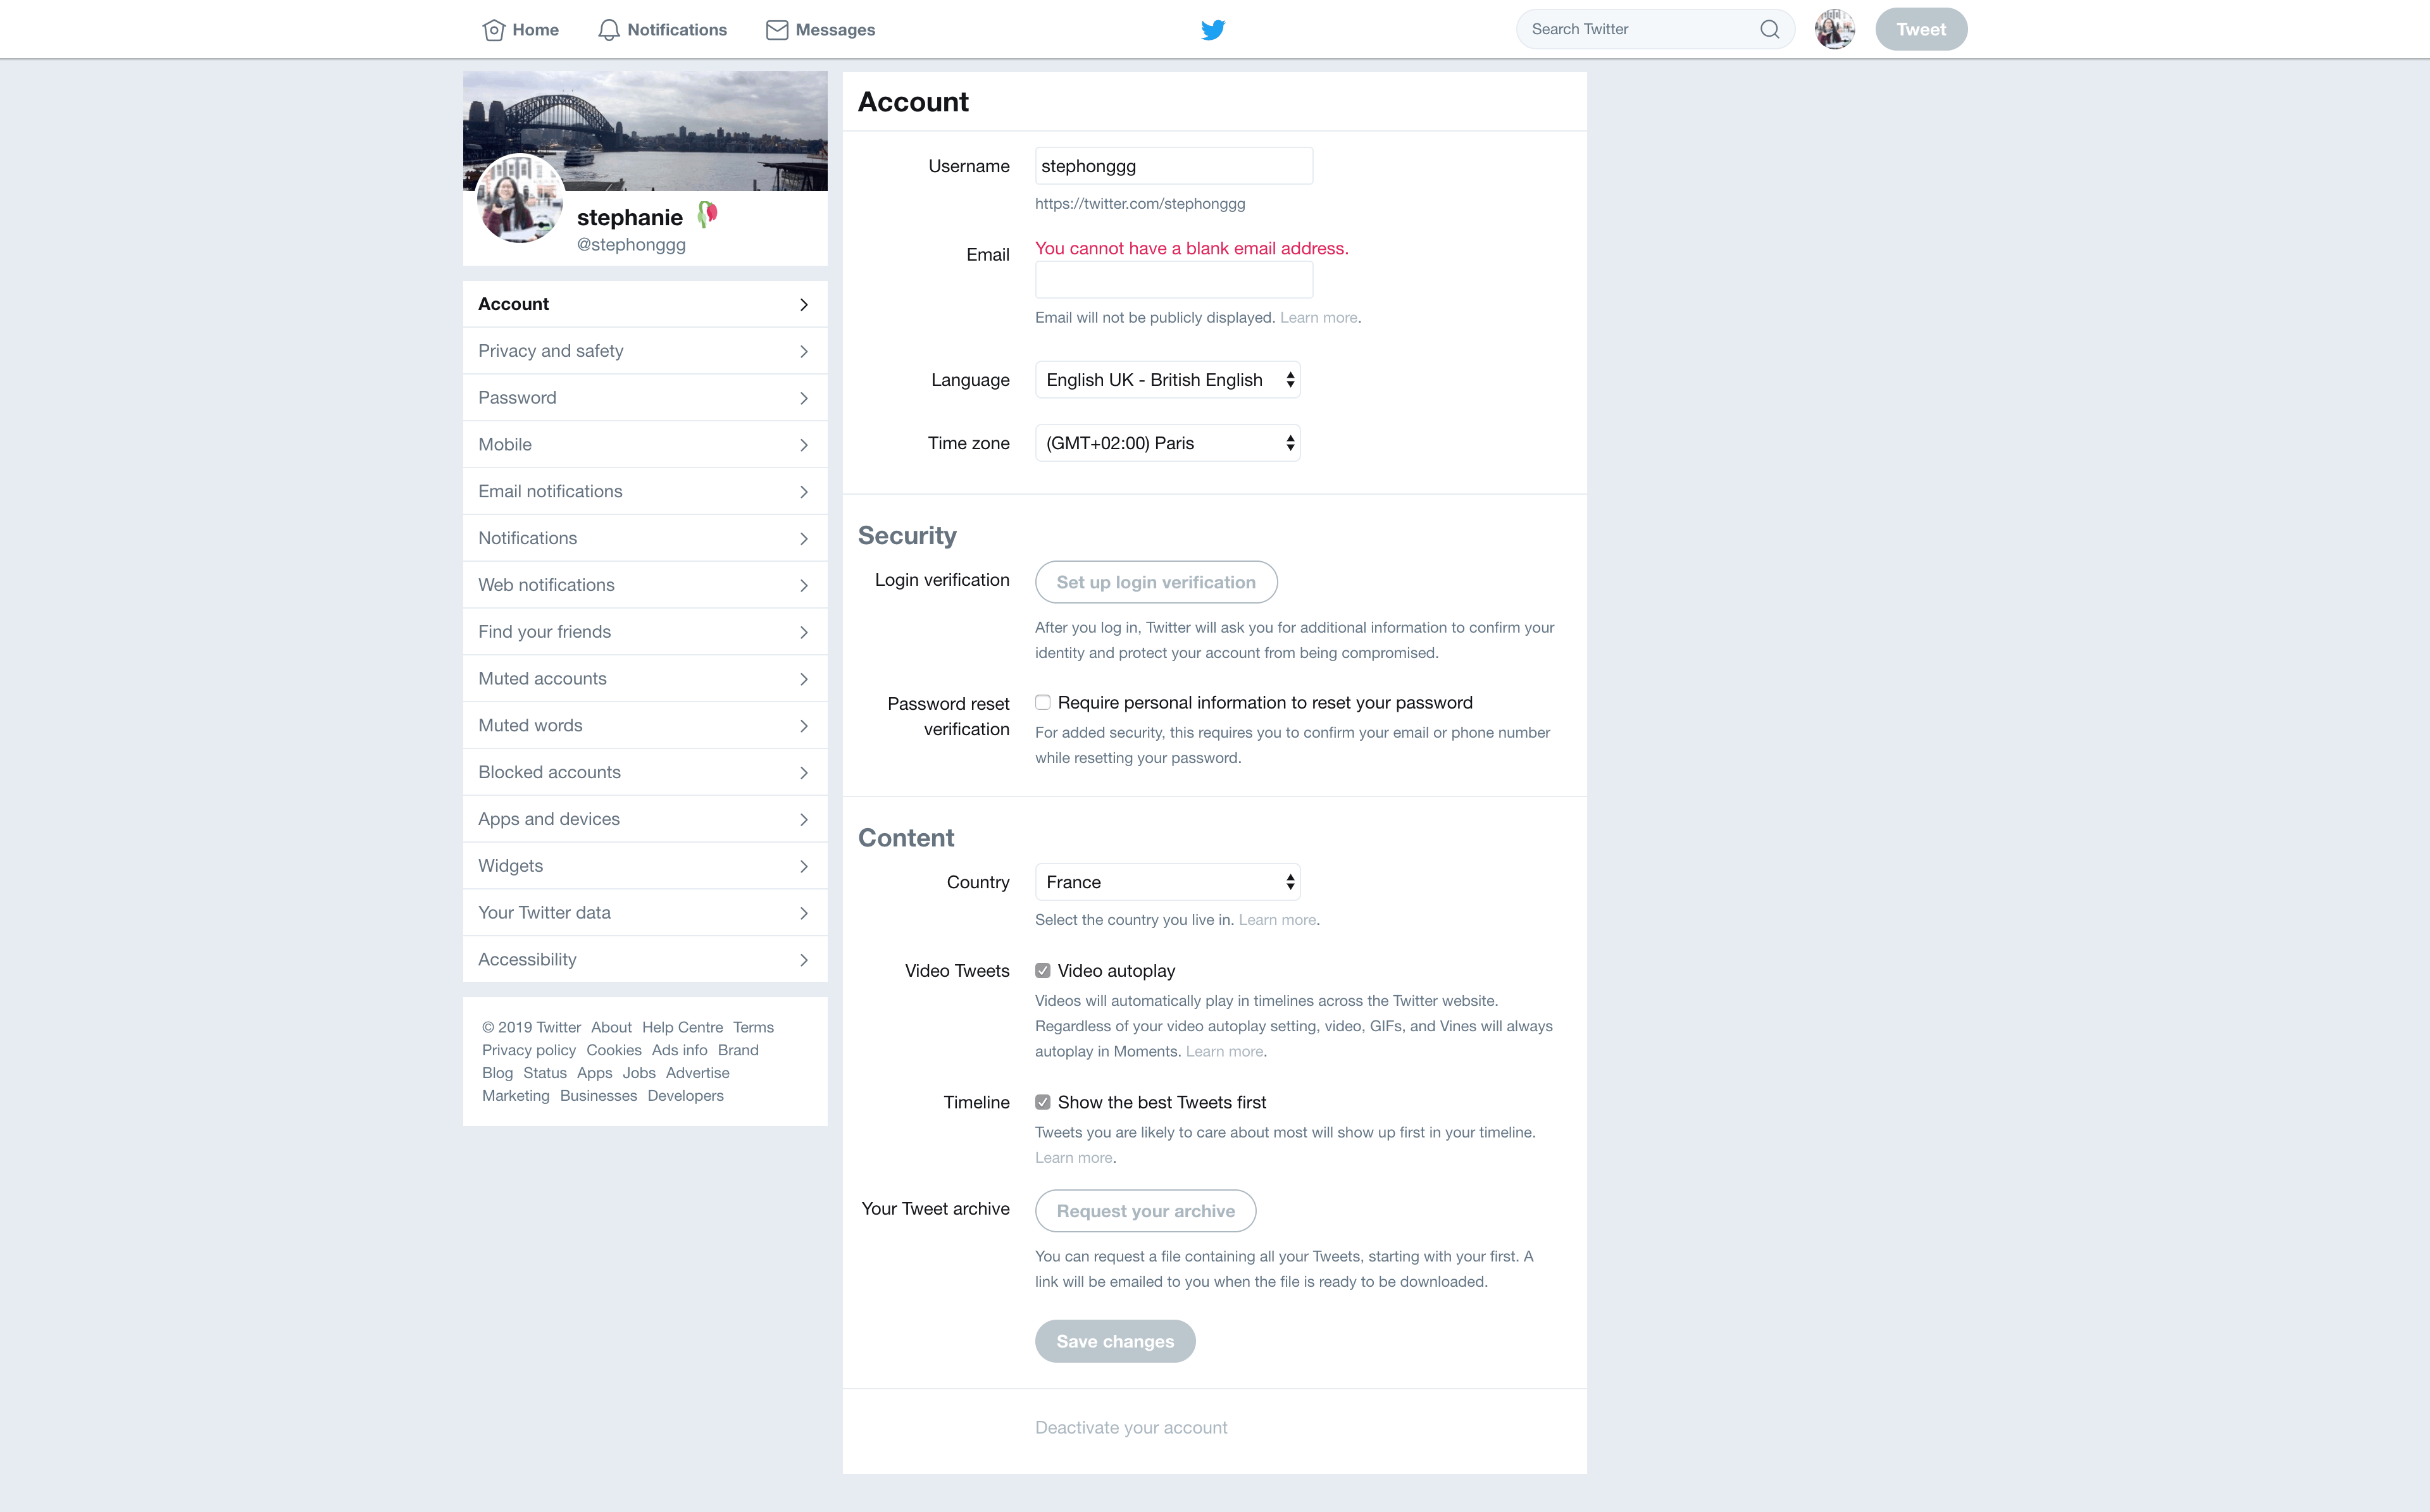 Account Settings by Twitter